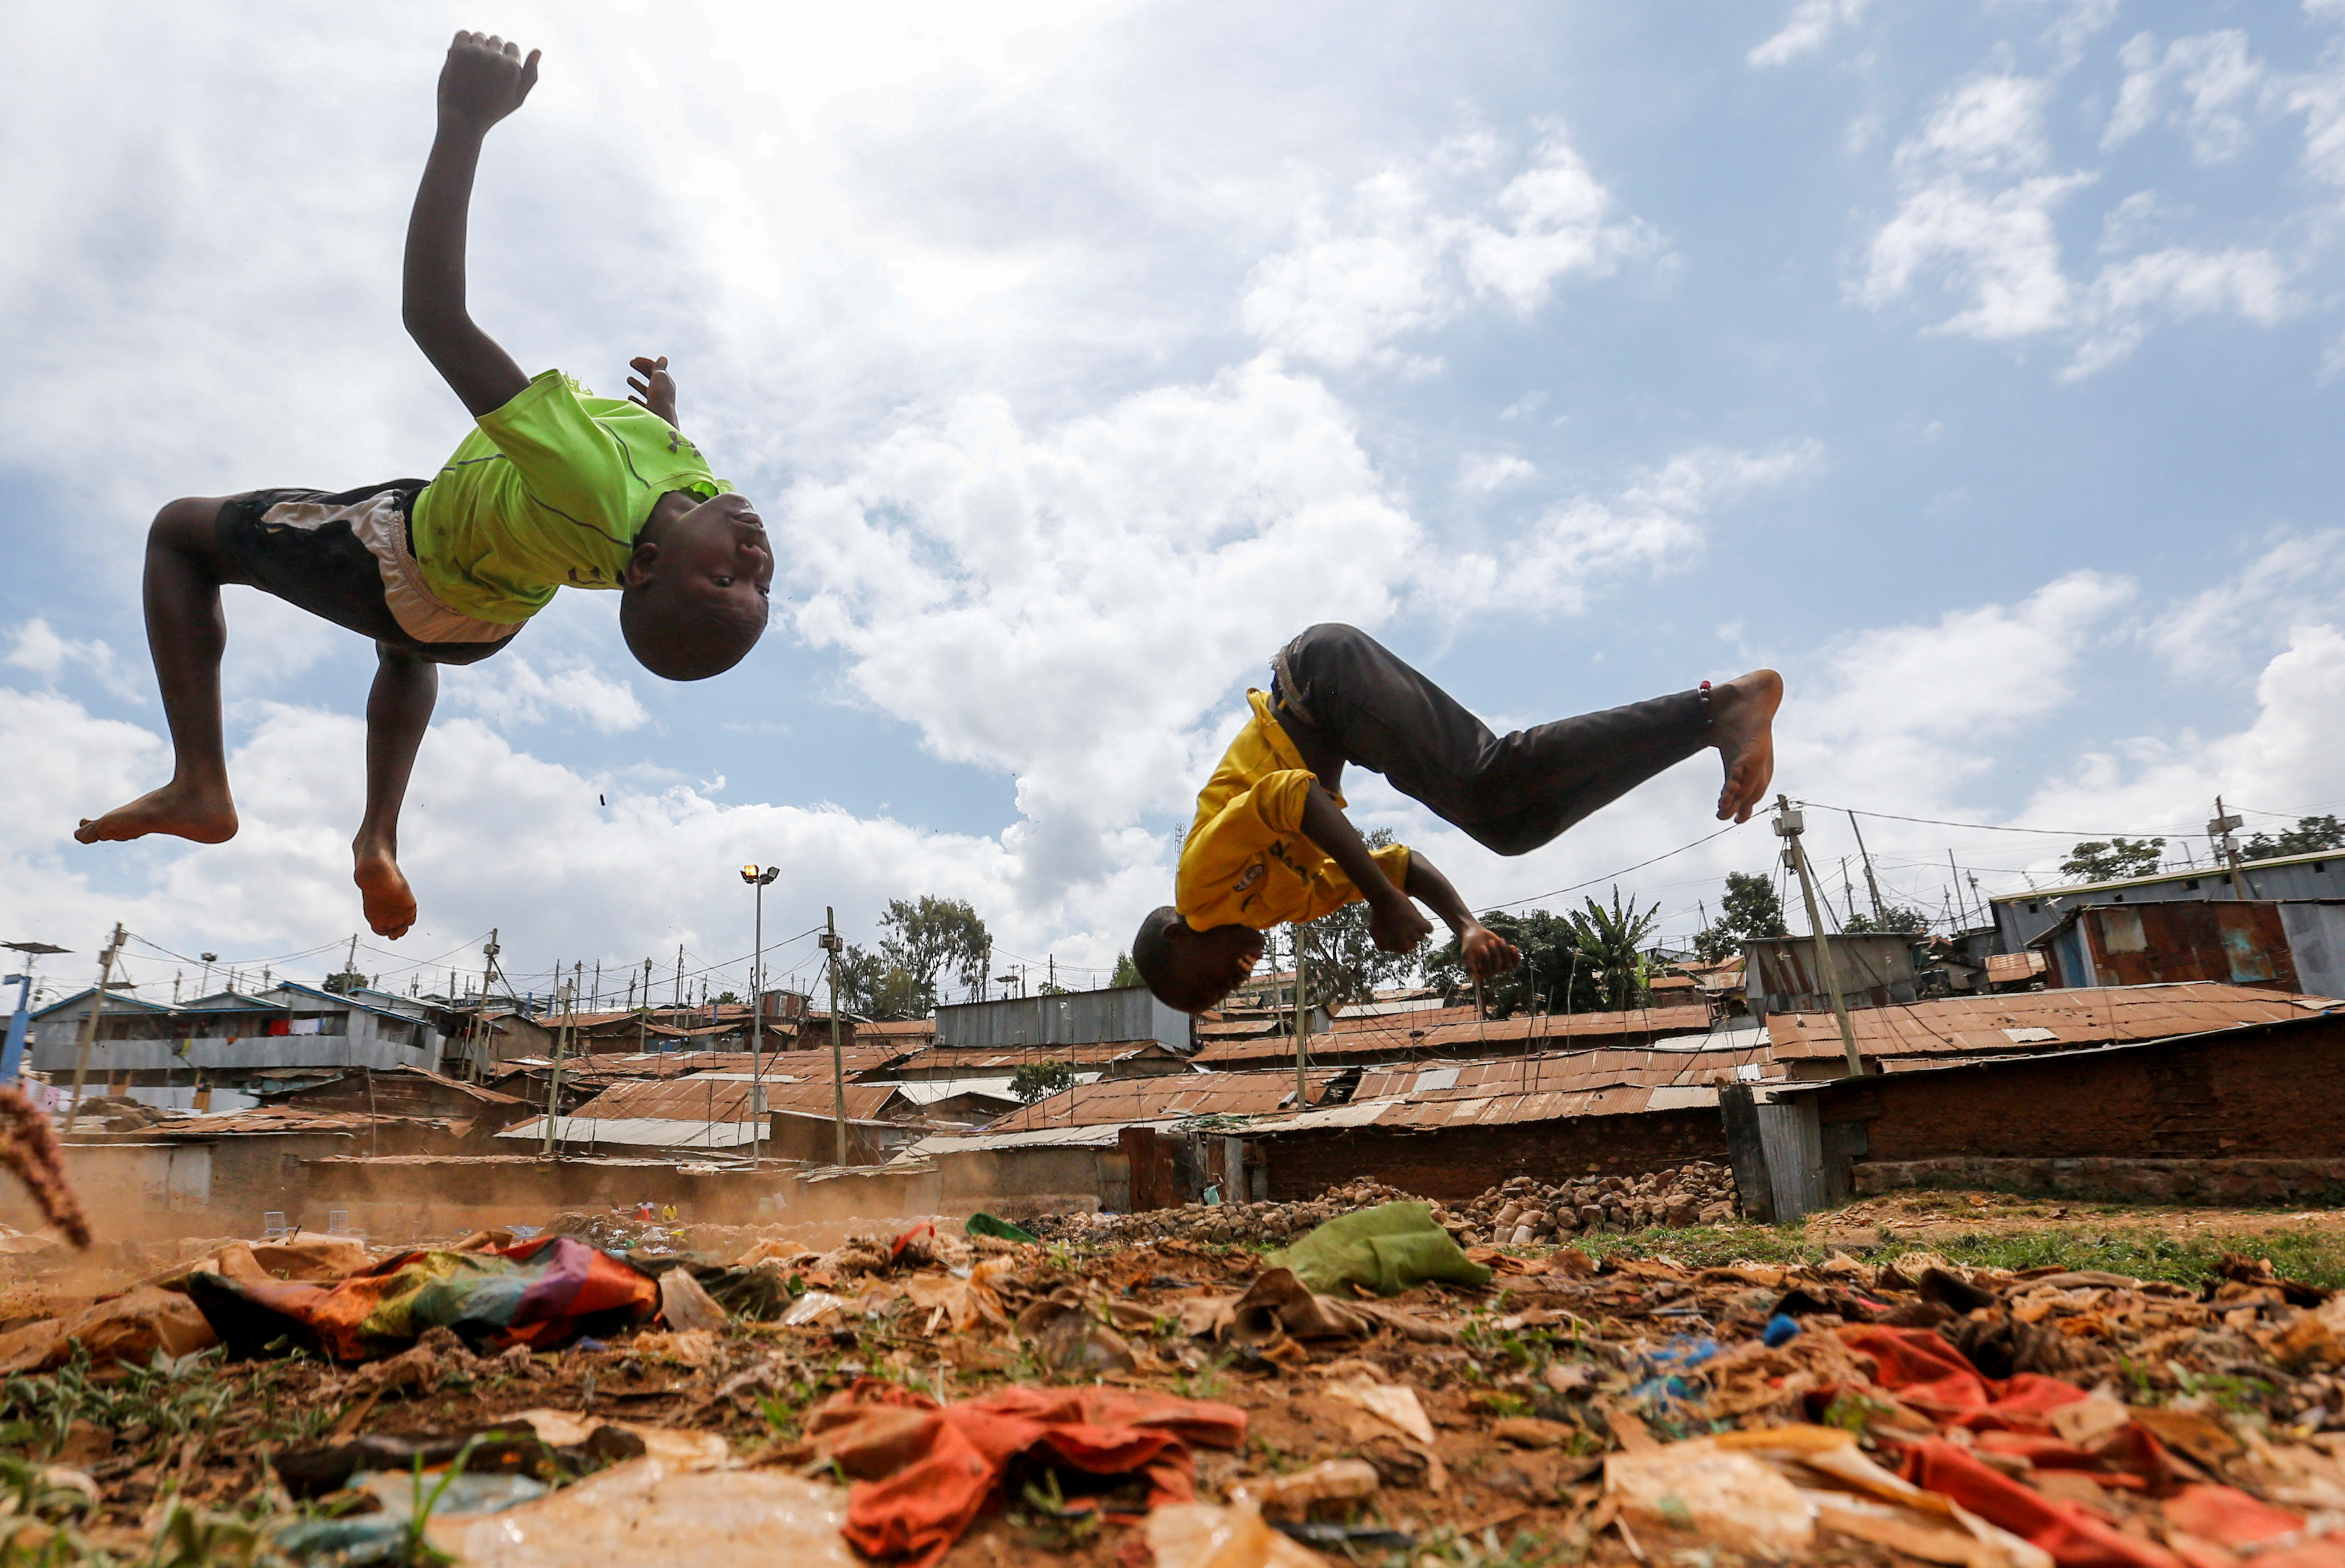 Children flip through the air as they play on dumped plastic materials amid the spread of the coronavirus disease (COVID-19) within Kibera slums in Nairobi, Kenya June 7, 2020. REUTERS/Thomas Mukoya     TPX IMAGES OF THE DAY - RC2E4H90JIZ3